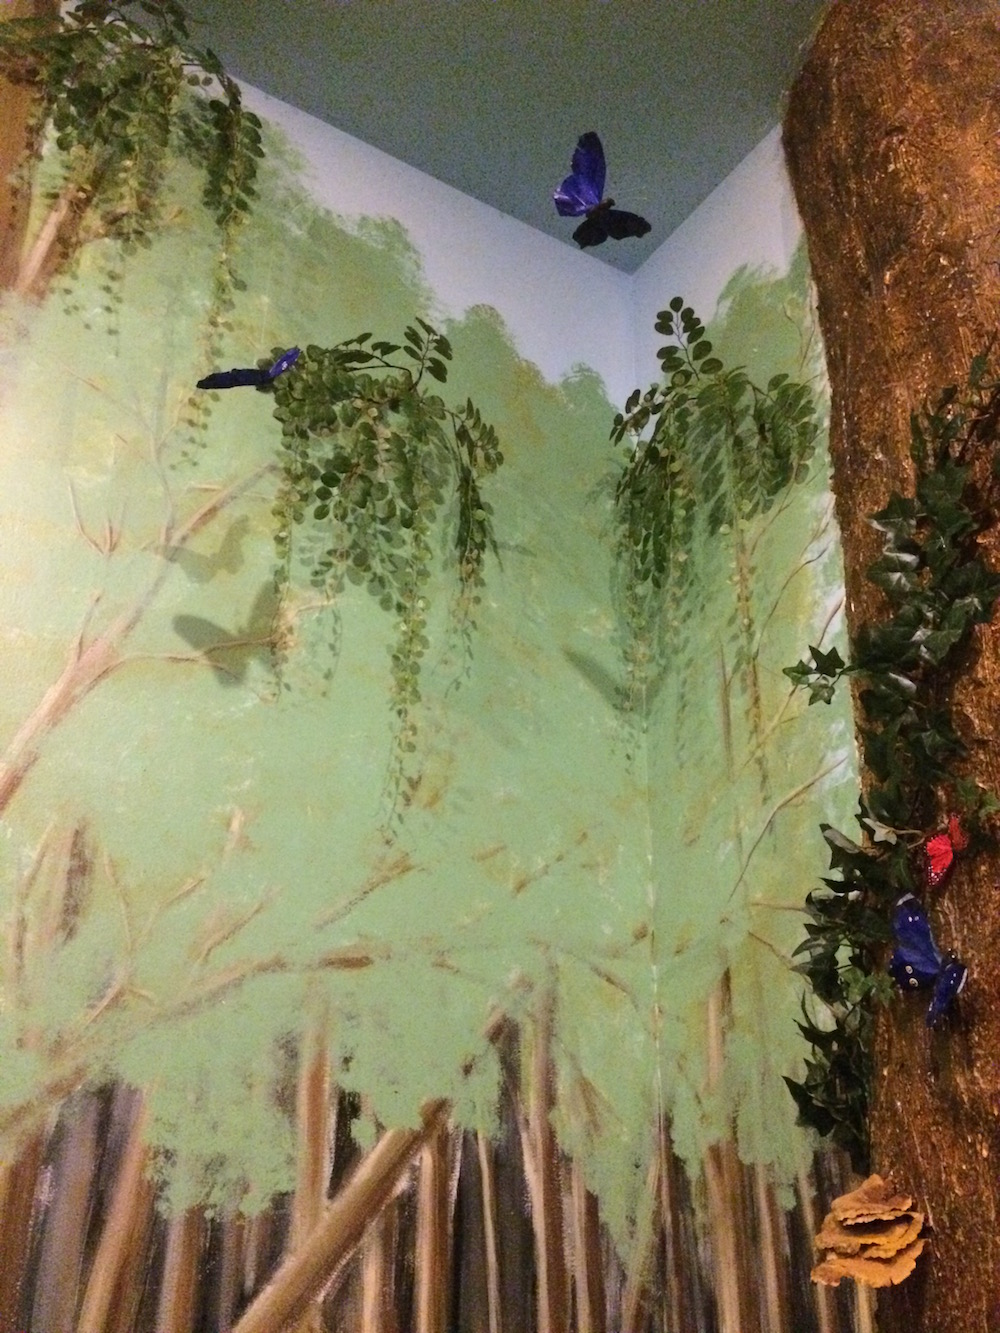 Wall painted to look like a forrest. There's a tree and butterflies.